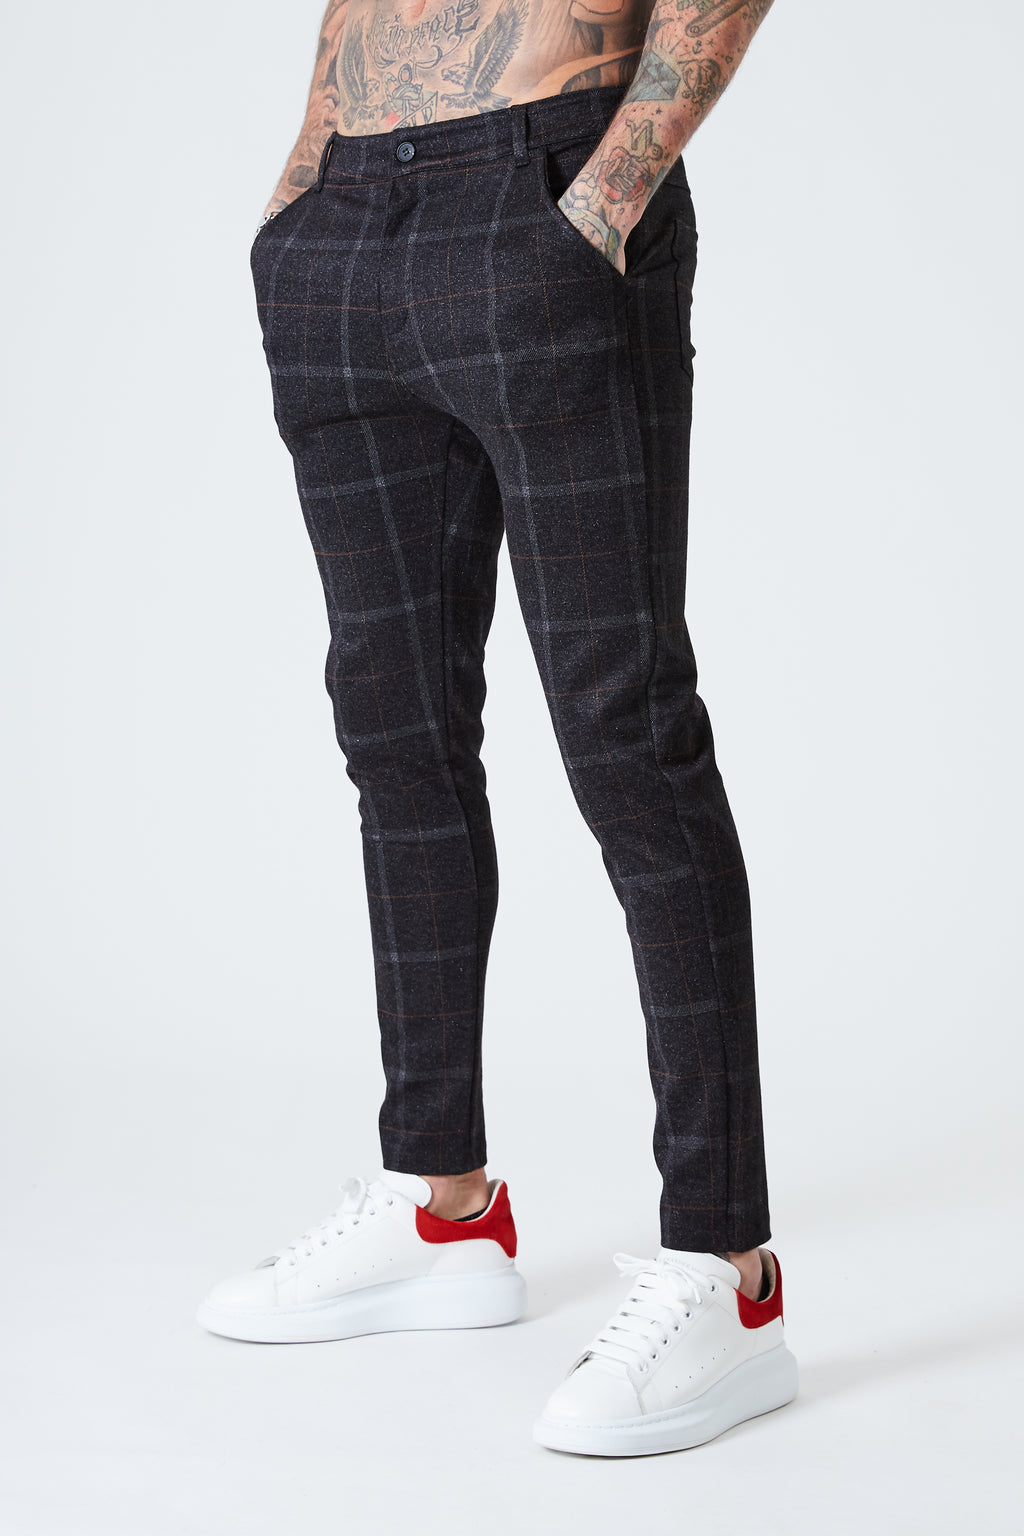 Luxe Check Trousers - Black - SVPPLY. STUDIOS